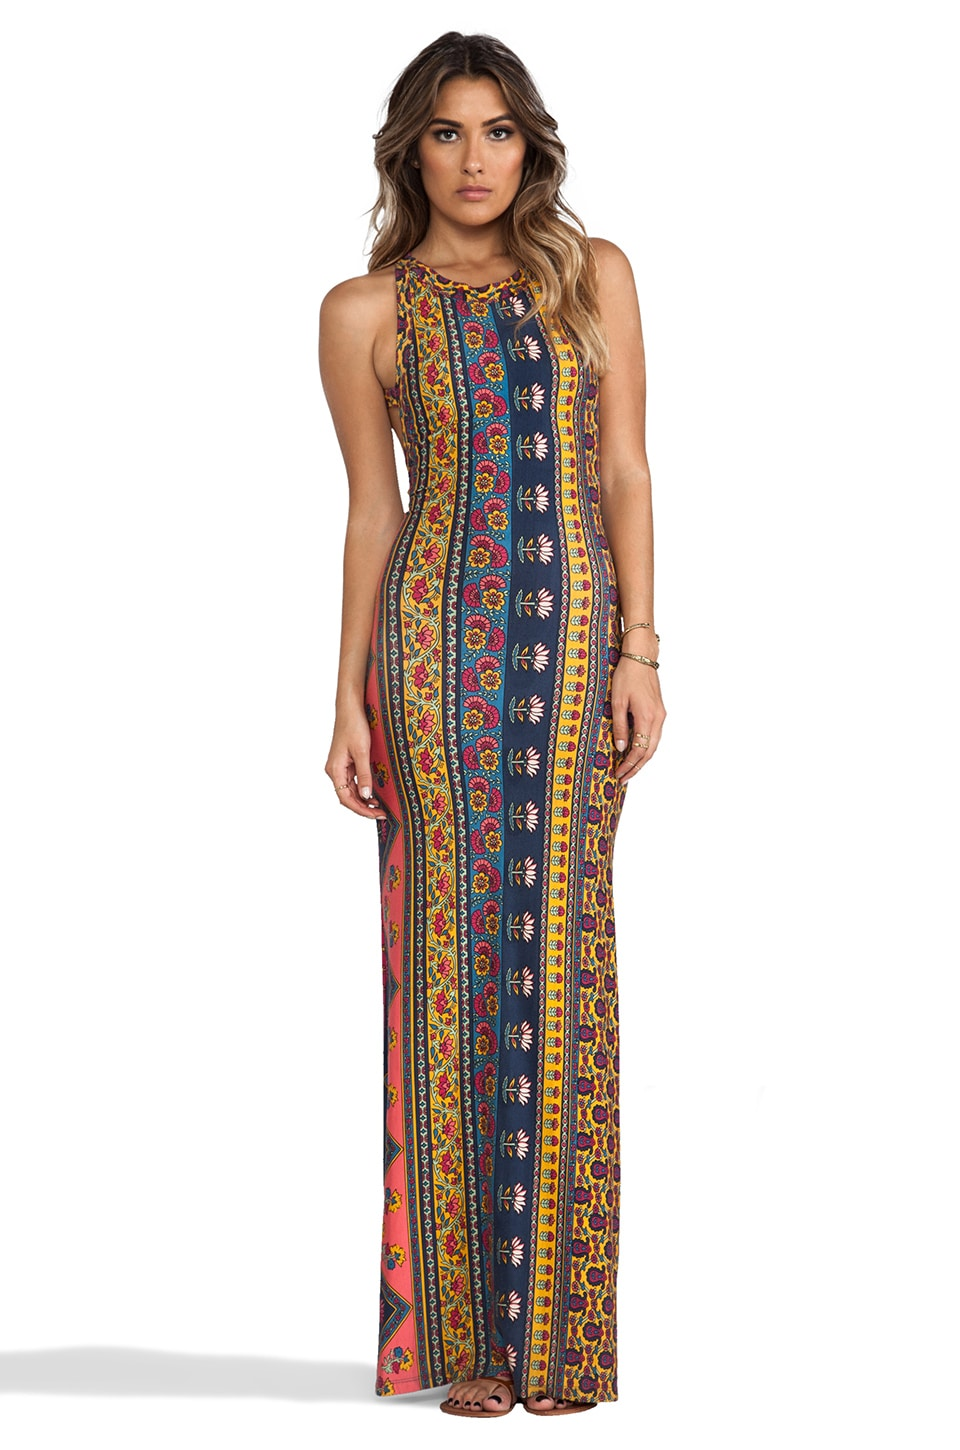 NOVELLA ROYALE Midnight Rambler Maxi Dress in Red Ethnic Floral ...